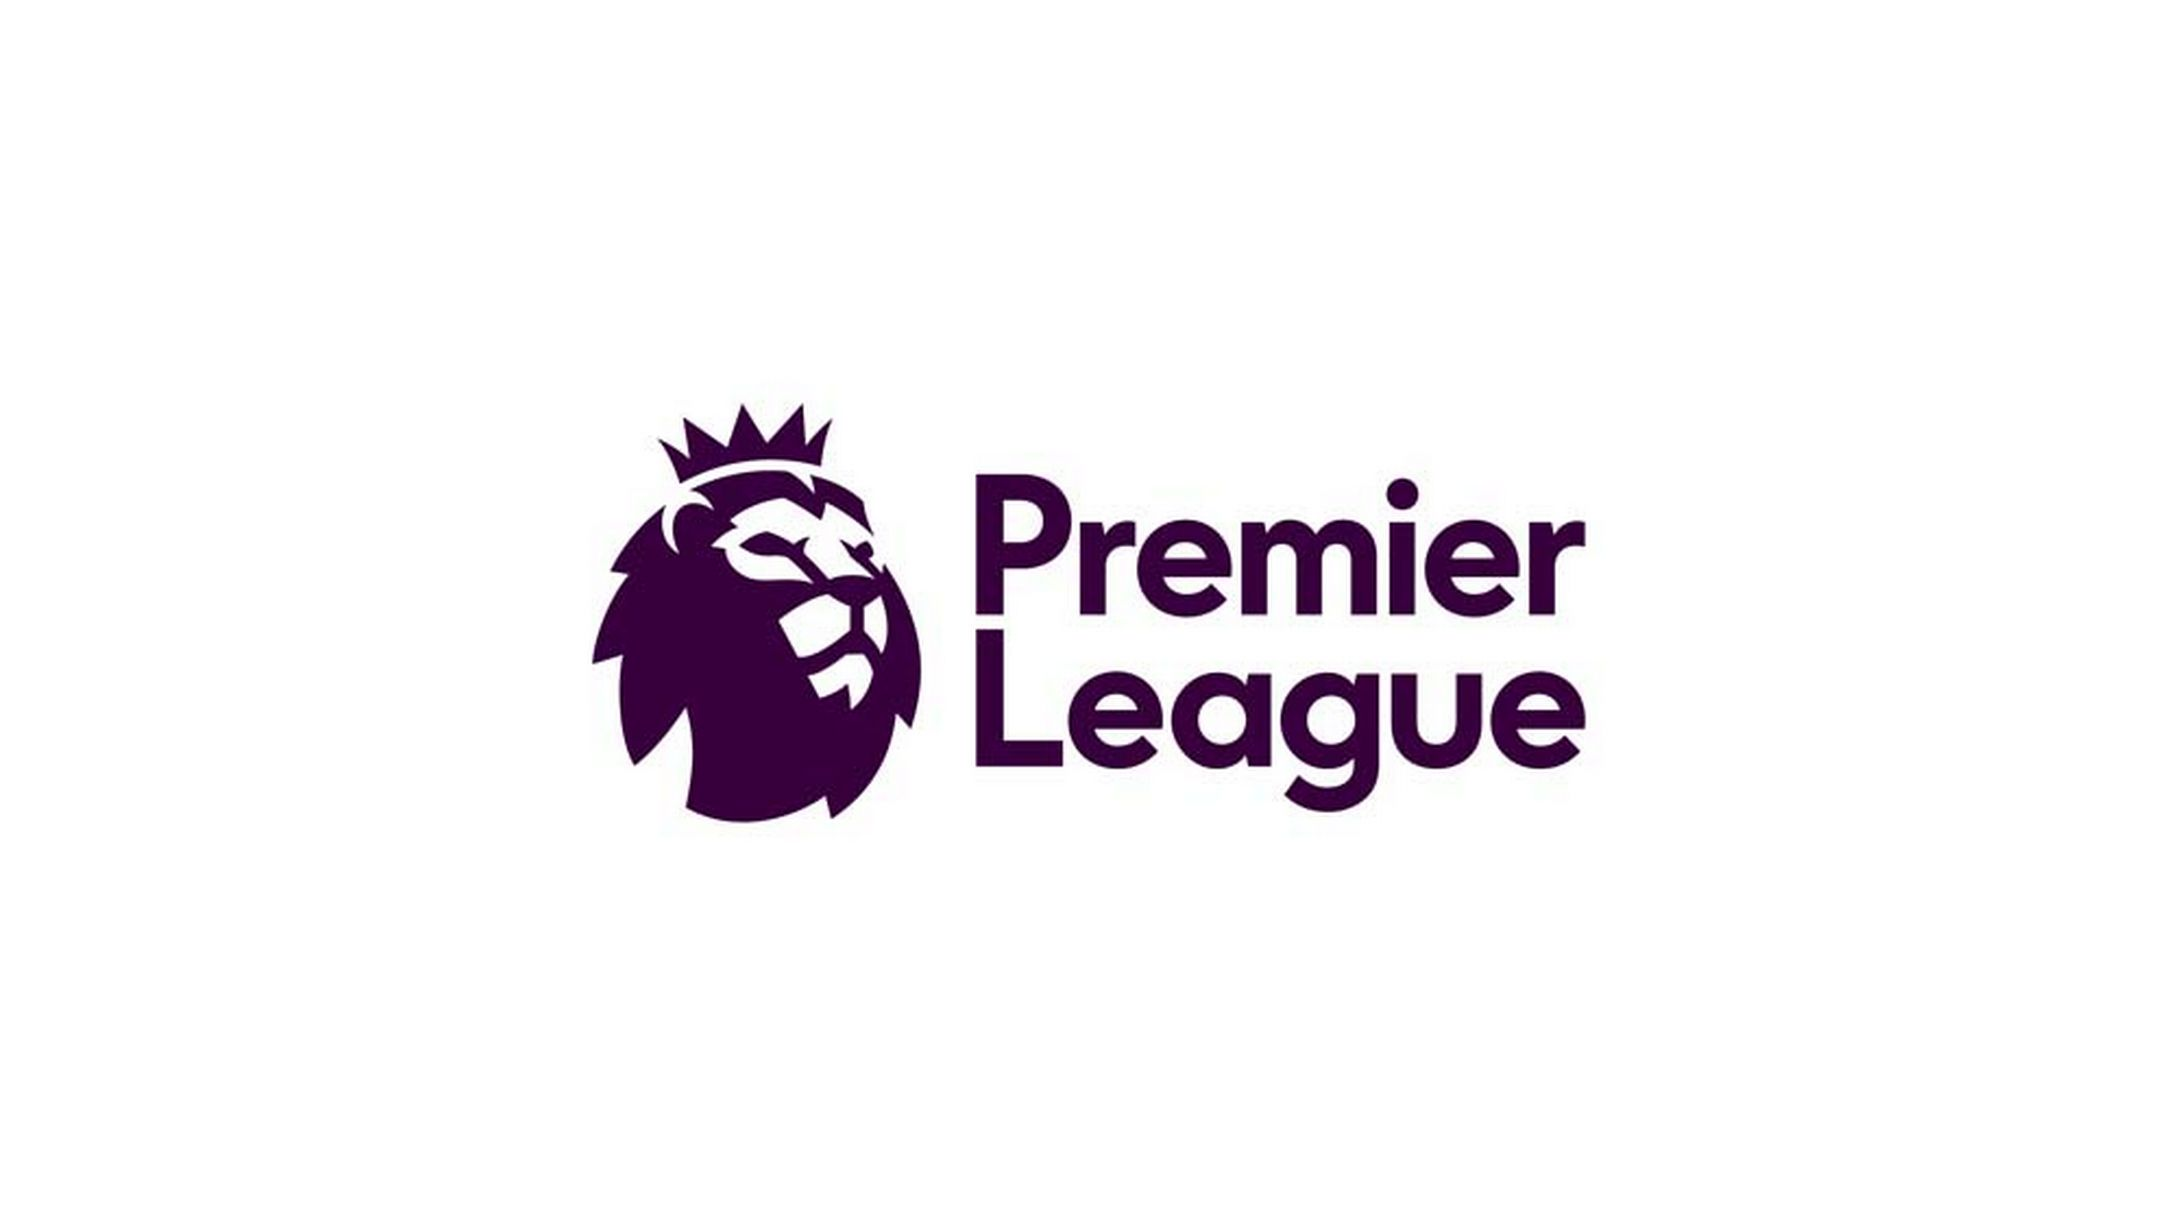 Premier-League-new-launch.jpg